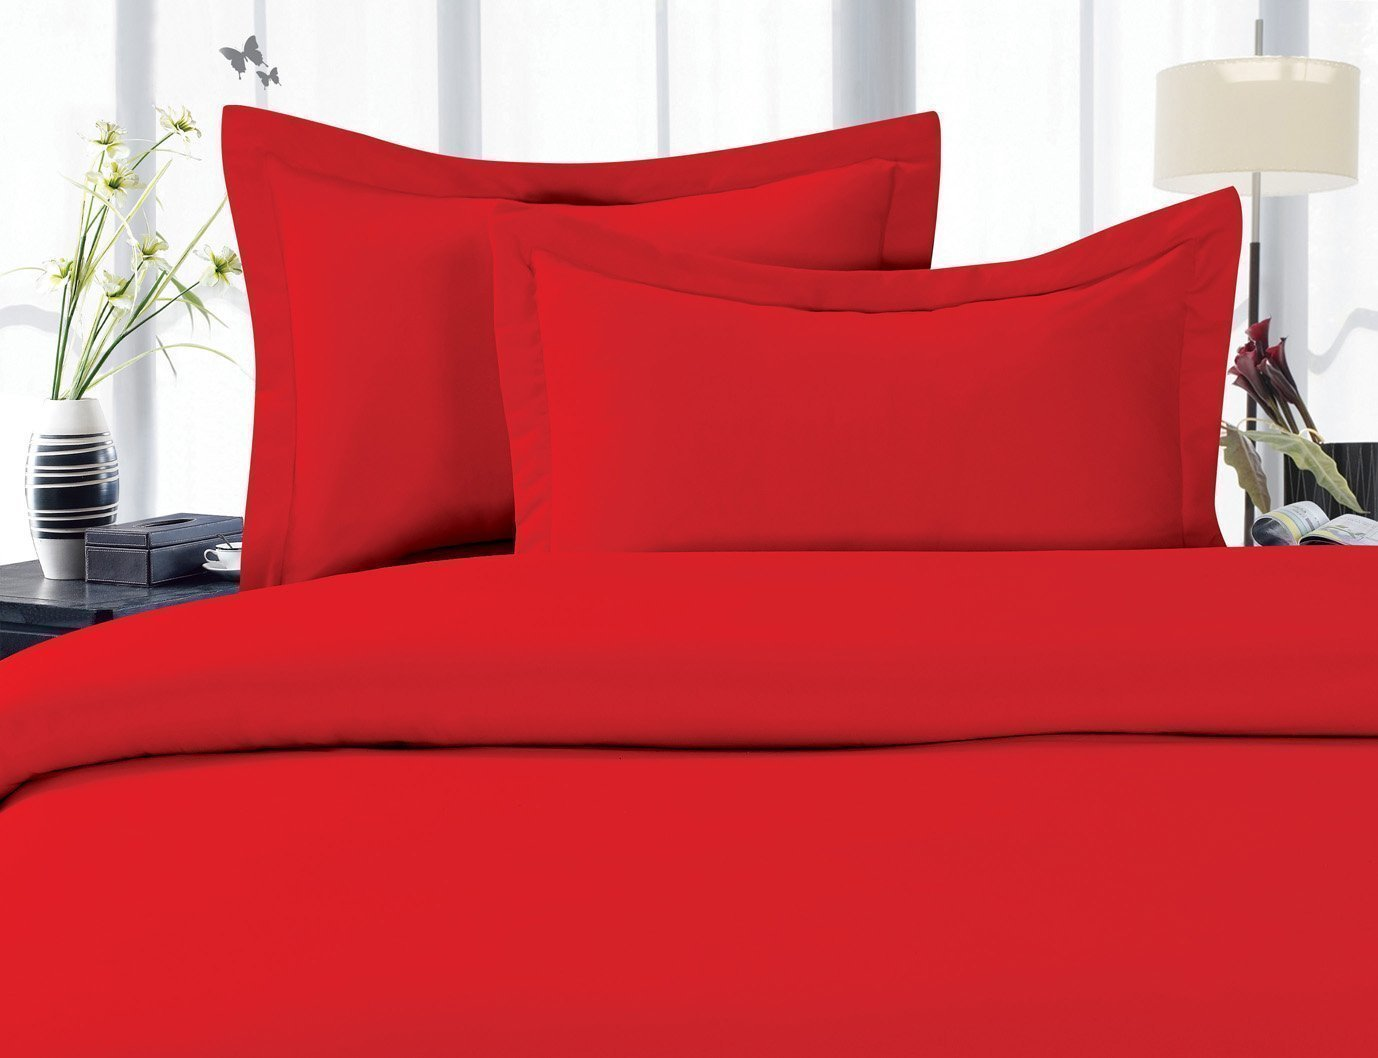 Holiday Gift WRINKLE FREE 3 Piece Duvet Cover Set, King/Cali King, Red